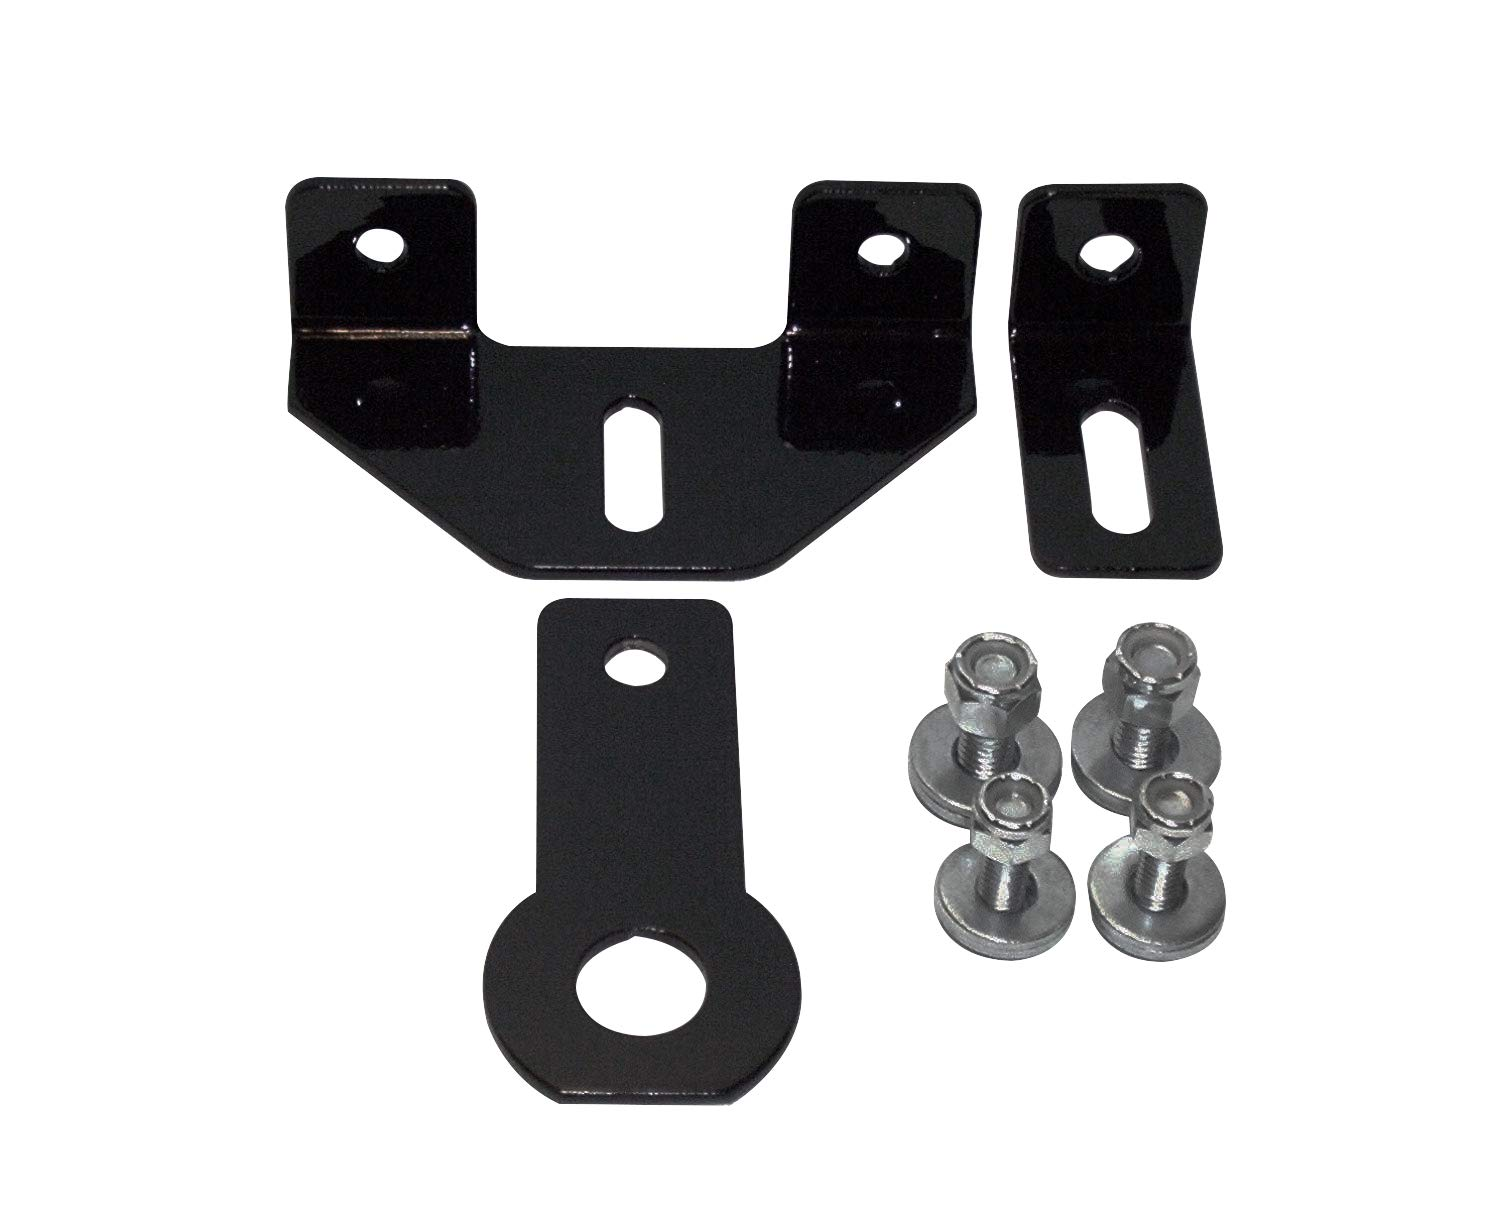 UNIVERSAL LAWN GARDEN TRACTOR HITCH SUPPORT BRACE KIT